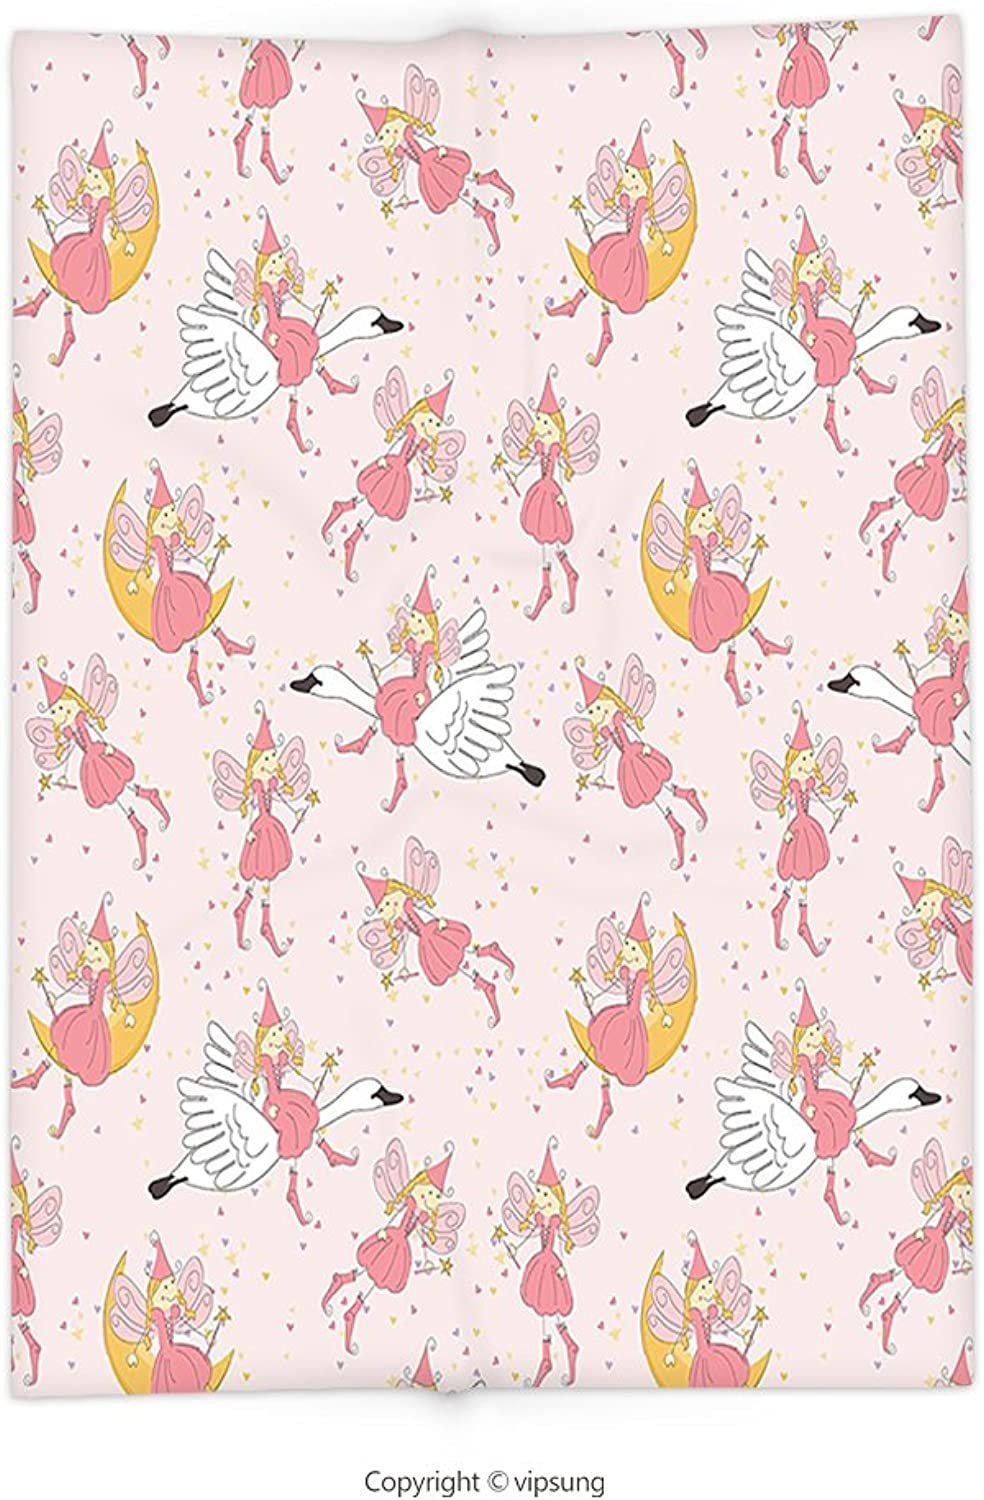 Vipsung Throw Blanket with Girls Decor Pattern with Flying Fairies Setting On Moon Riding Swan Magical Stick Happy Decor Super Soft and Cozy Fleece Blanket